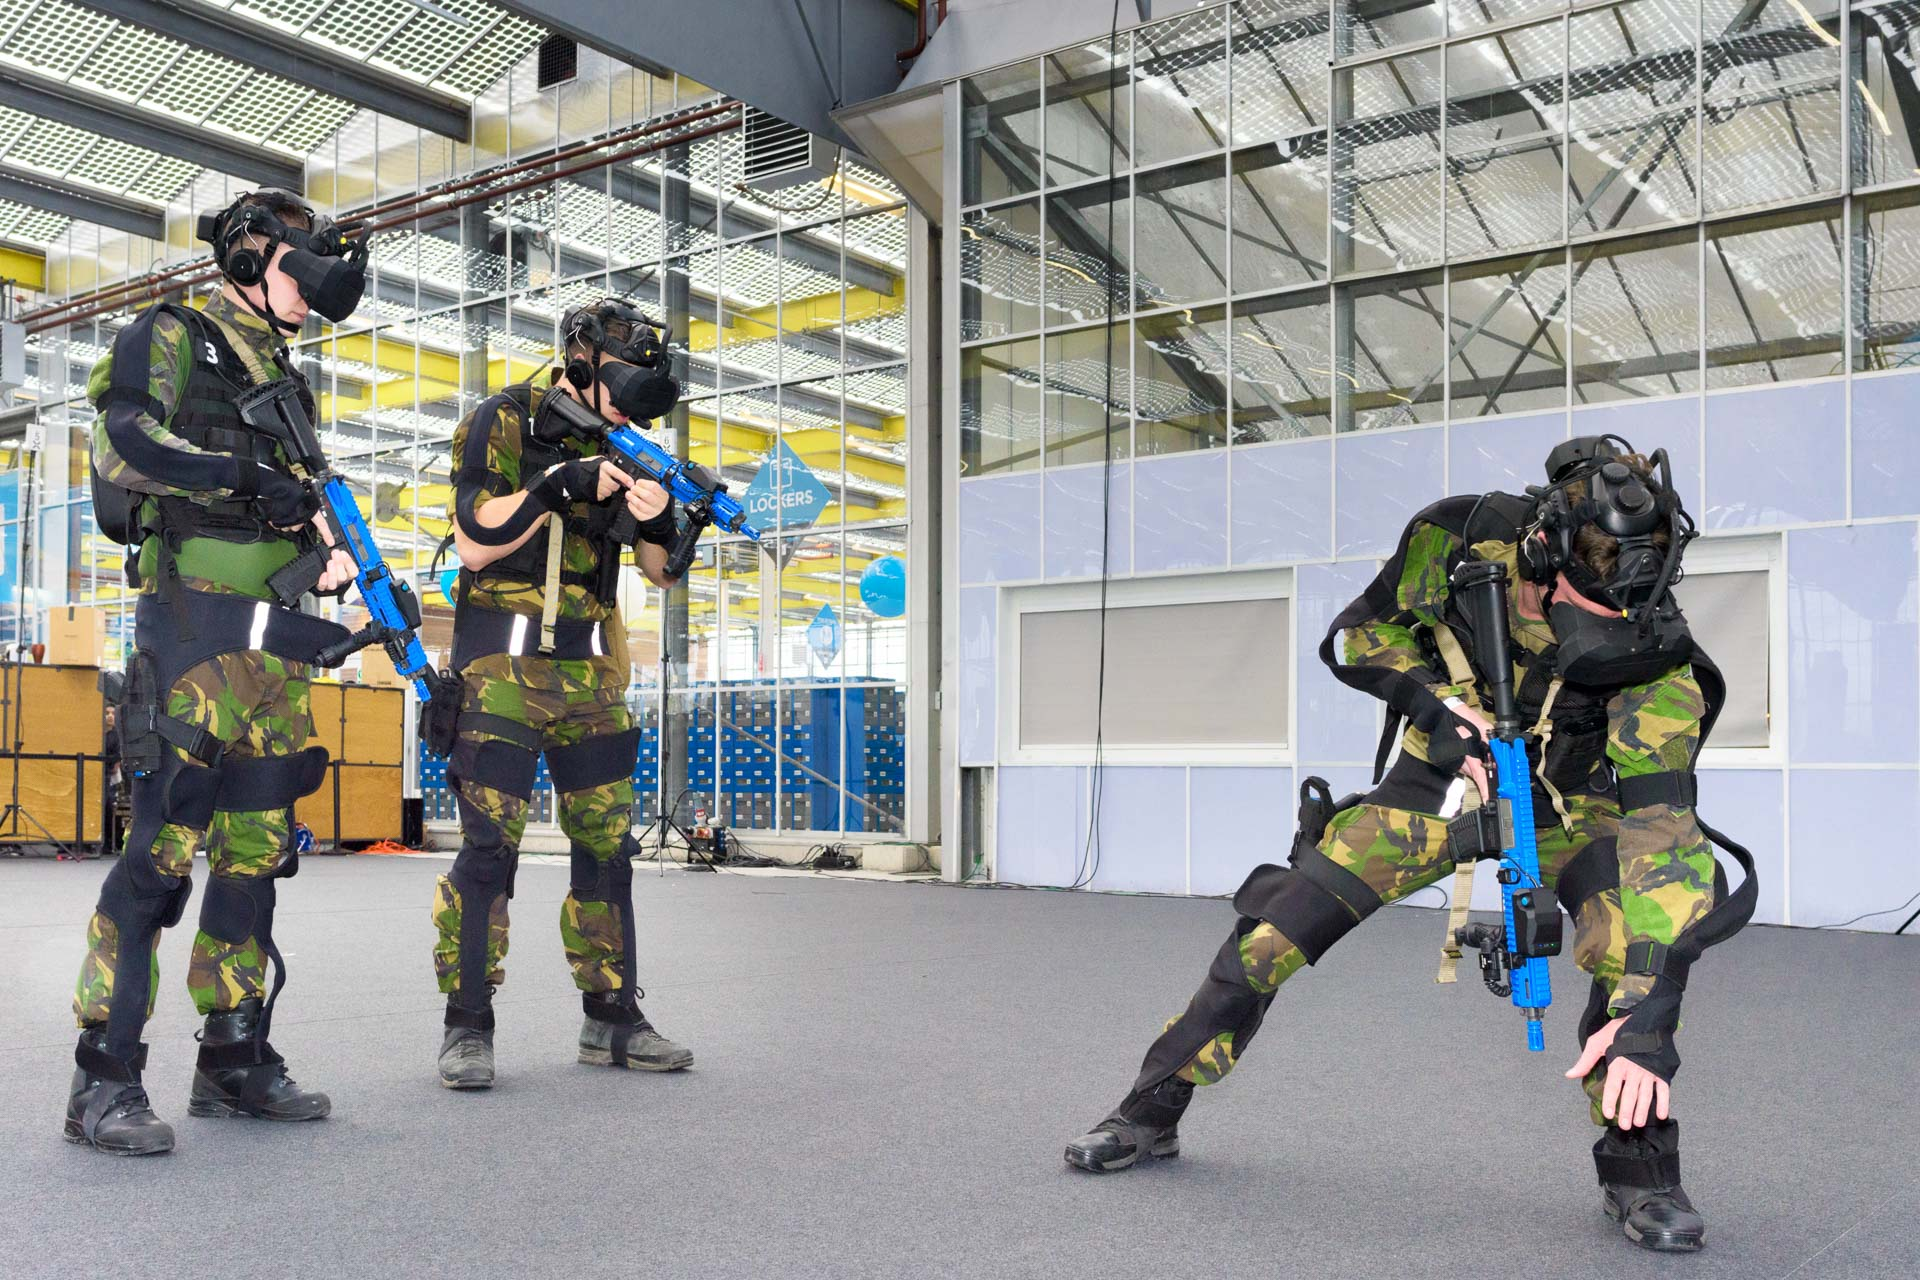 Face Reality | Defensie trainingssysteem SUIT (Small Unit Immersive Trainer) - Brightday 2019 | Sas Schilten ★ Fotografie